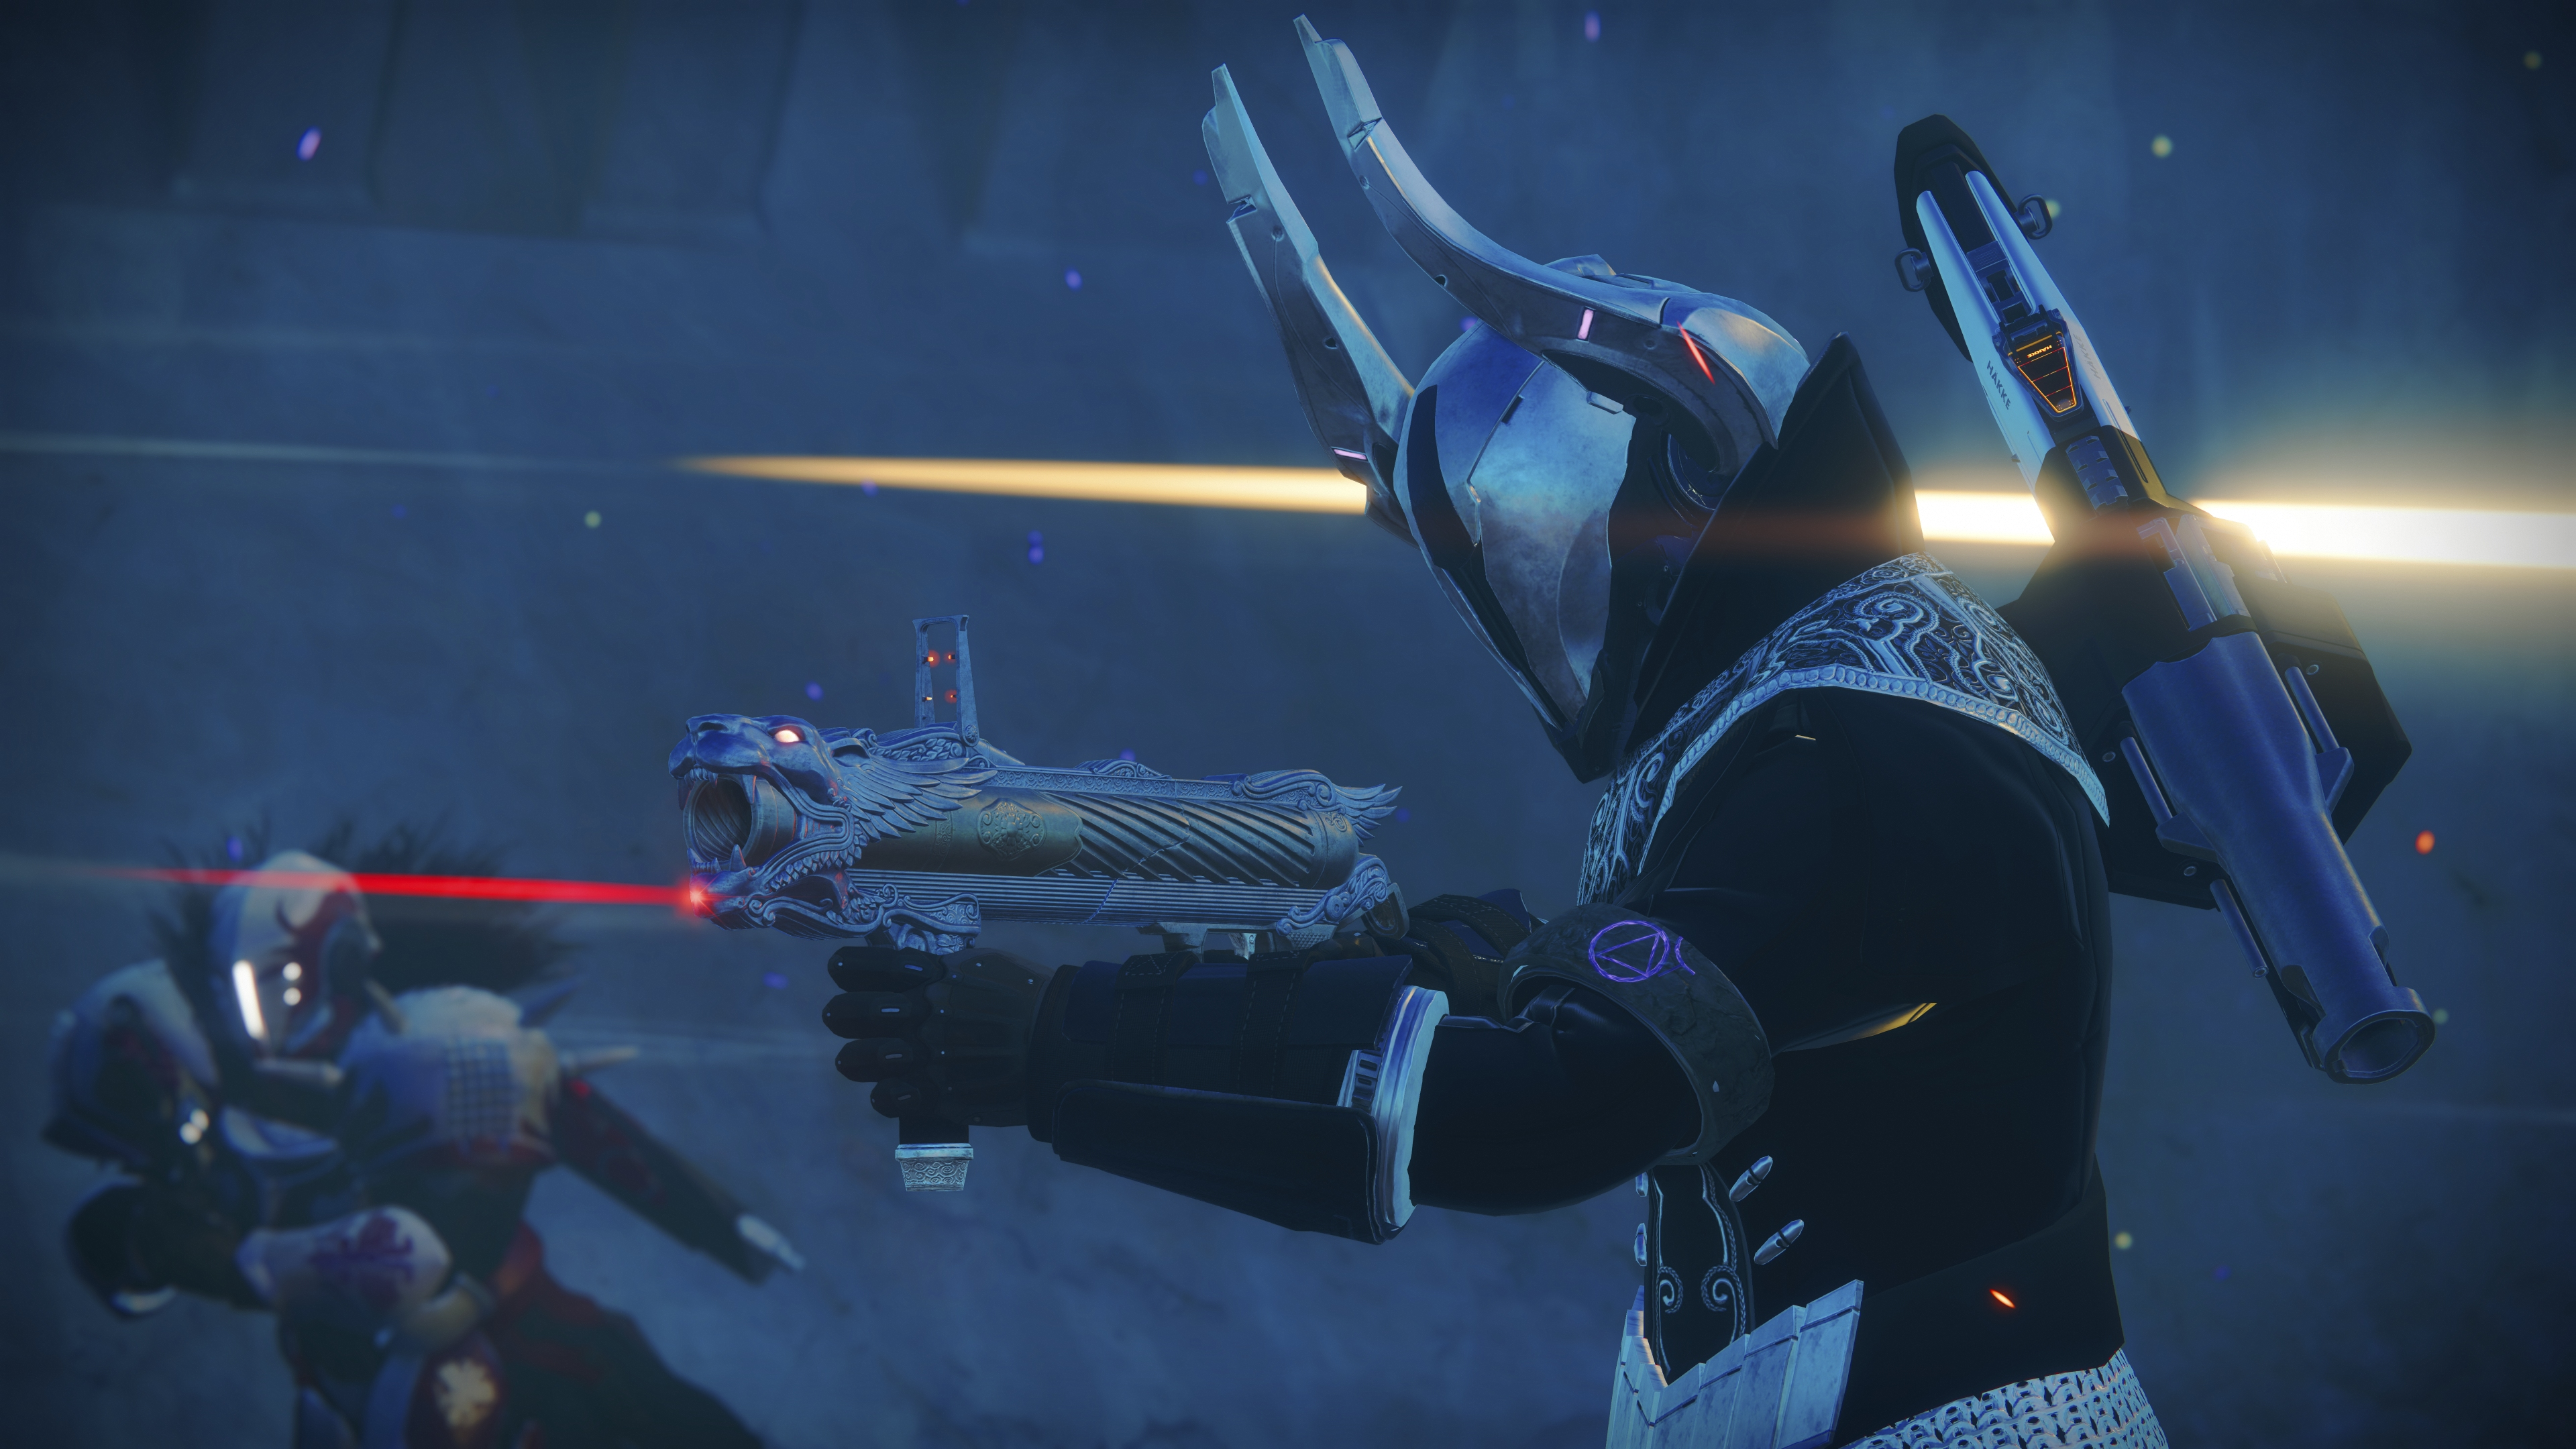 The Best Destiny 2 Wallpapers 4k Screenshots And More Gamepur